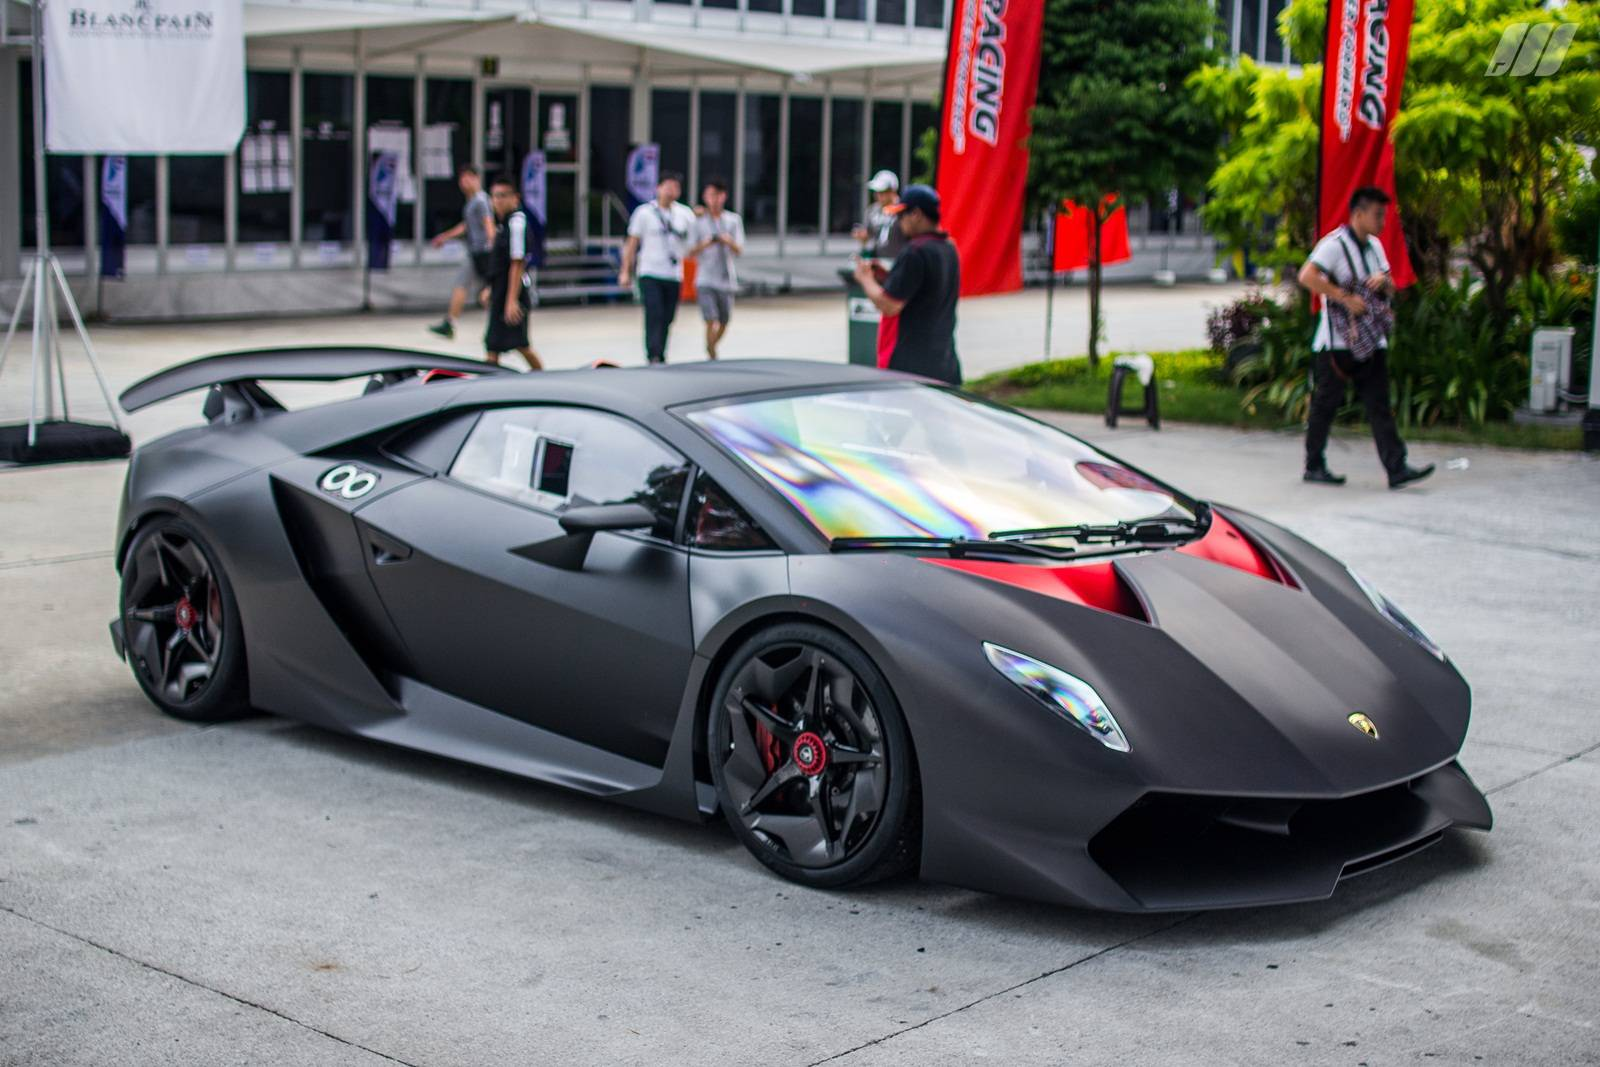 the lamborghini sesto elemento sixth element in english is a two door two seater v10 high performance lightweight limited edition car produced by - Sports Cars Lamborghini 2010